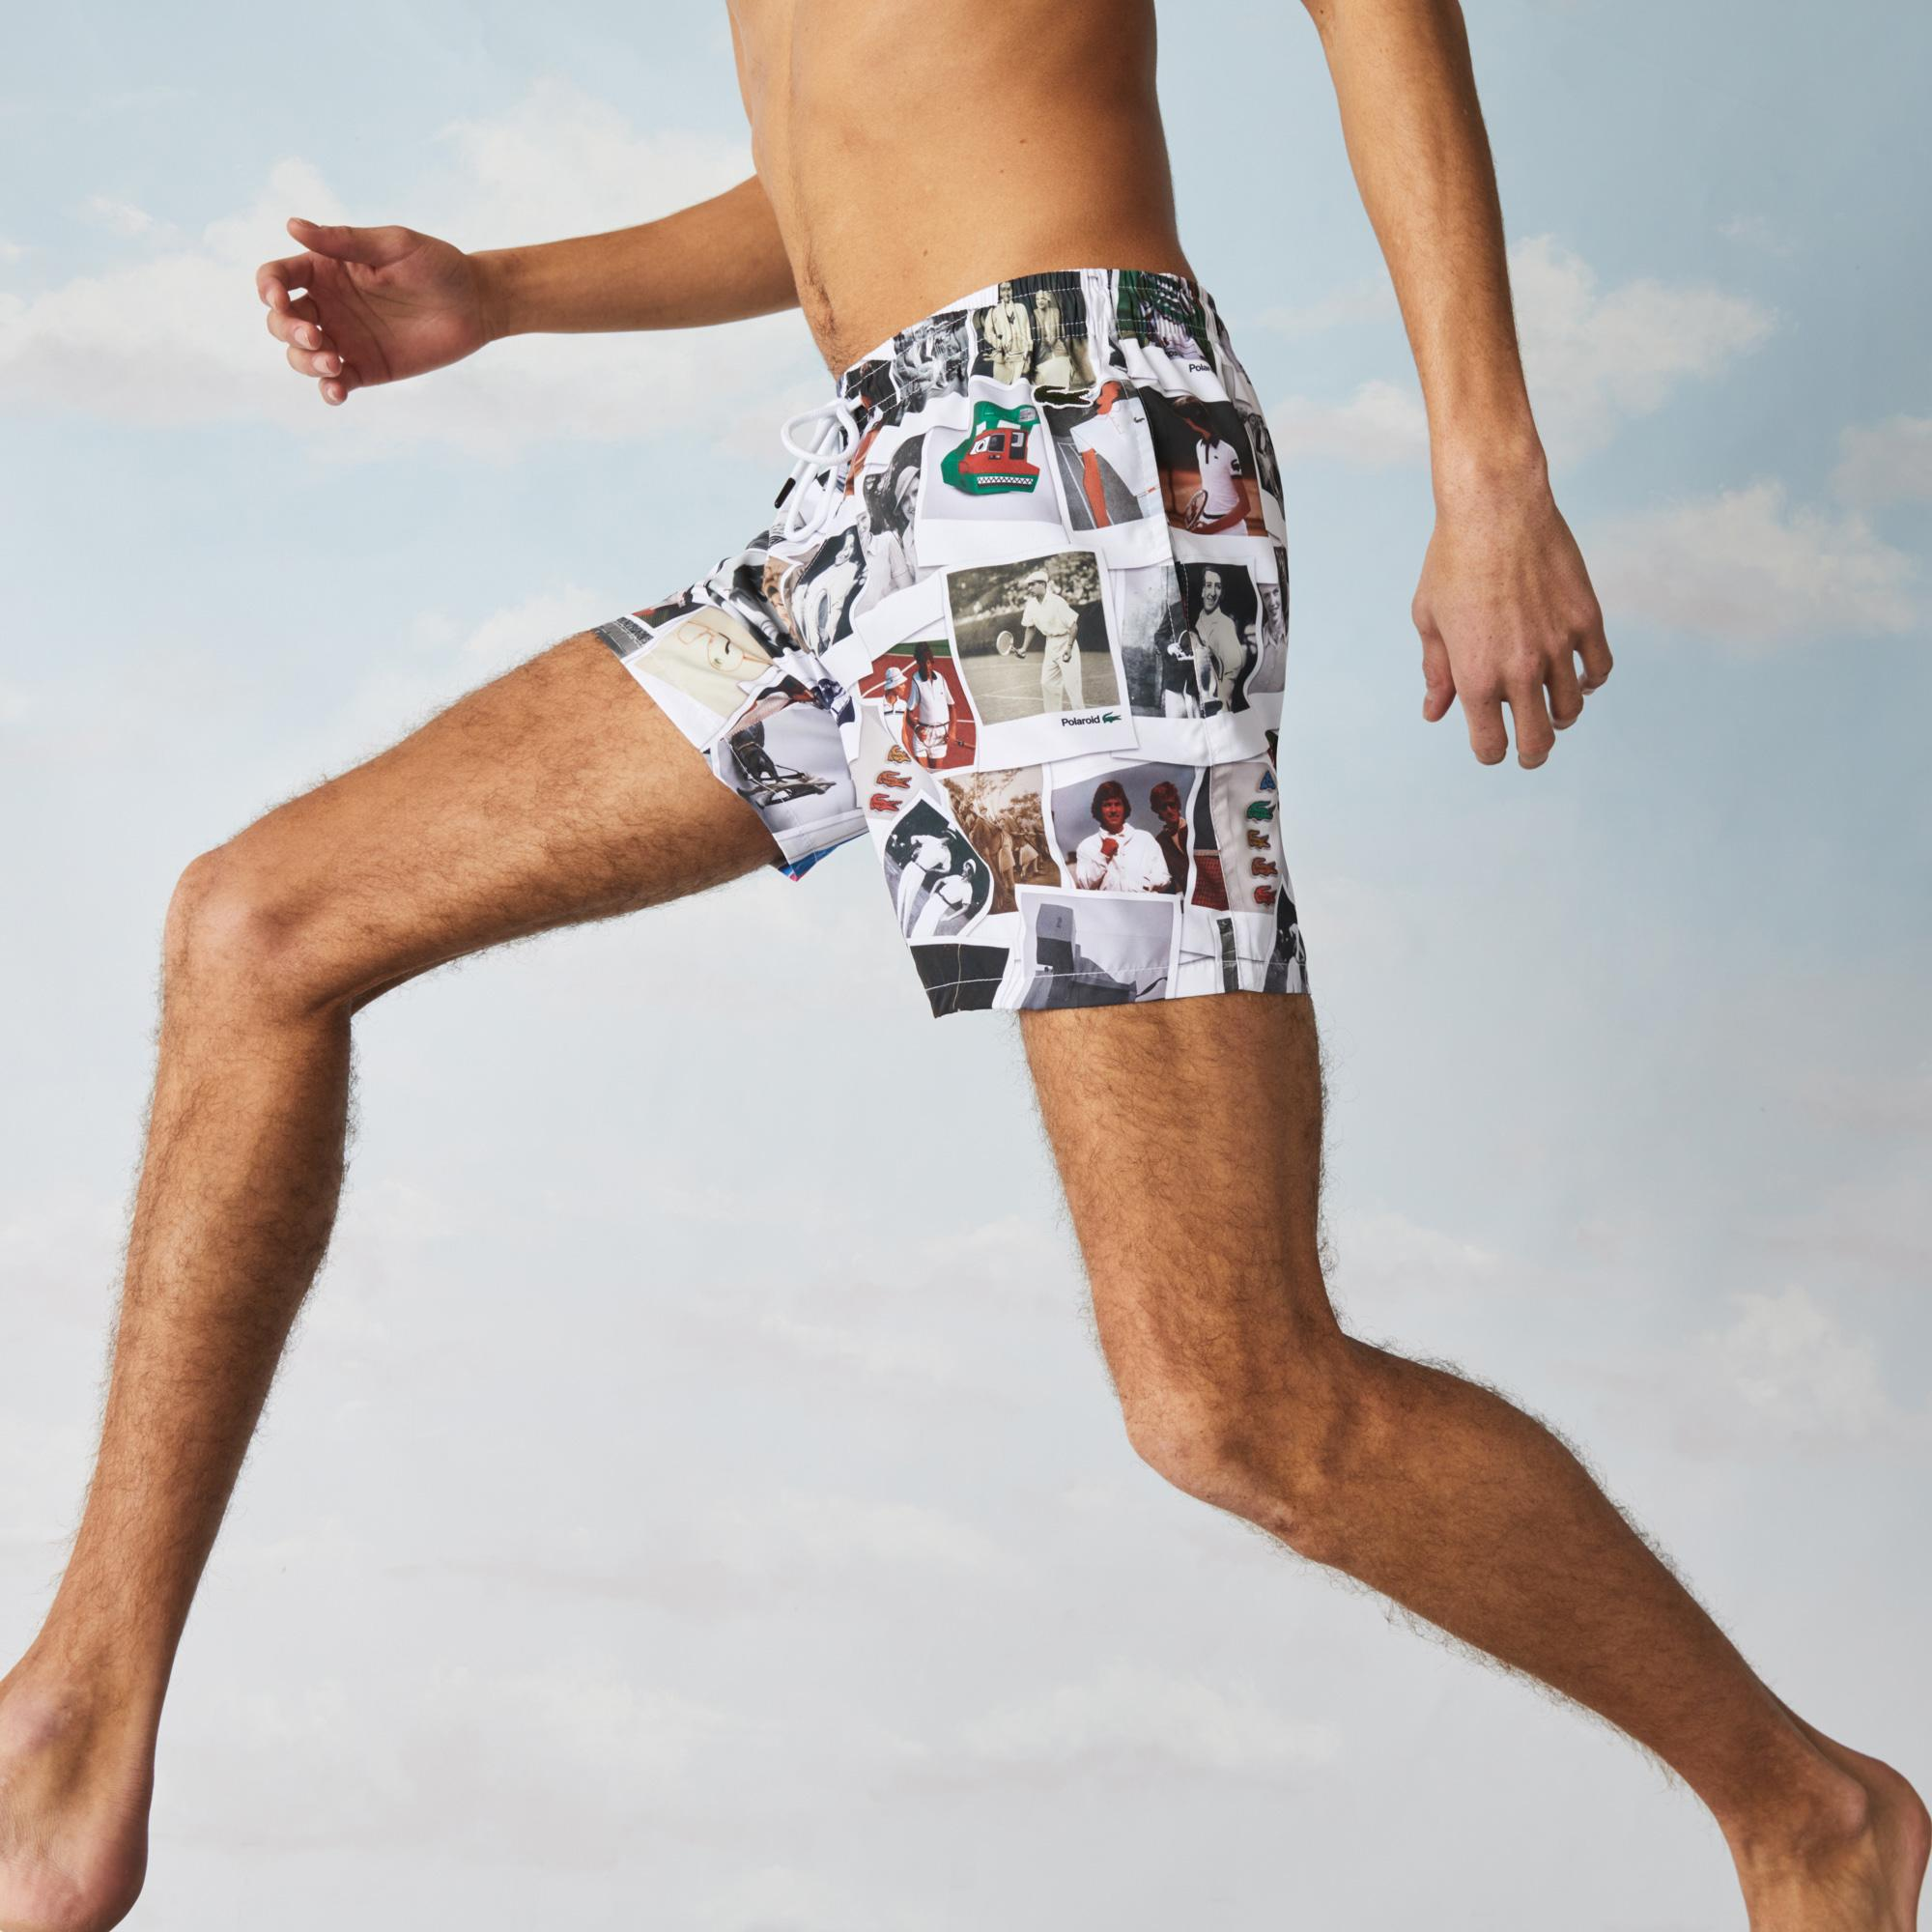 Lacoste LIVE x Polaroid Unisex Print Swimming Trunks